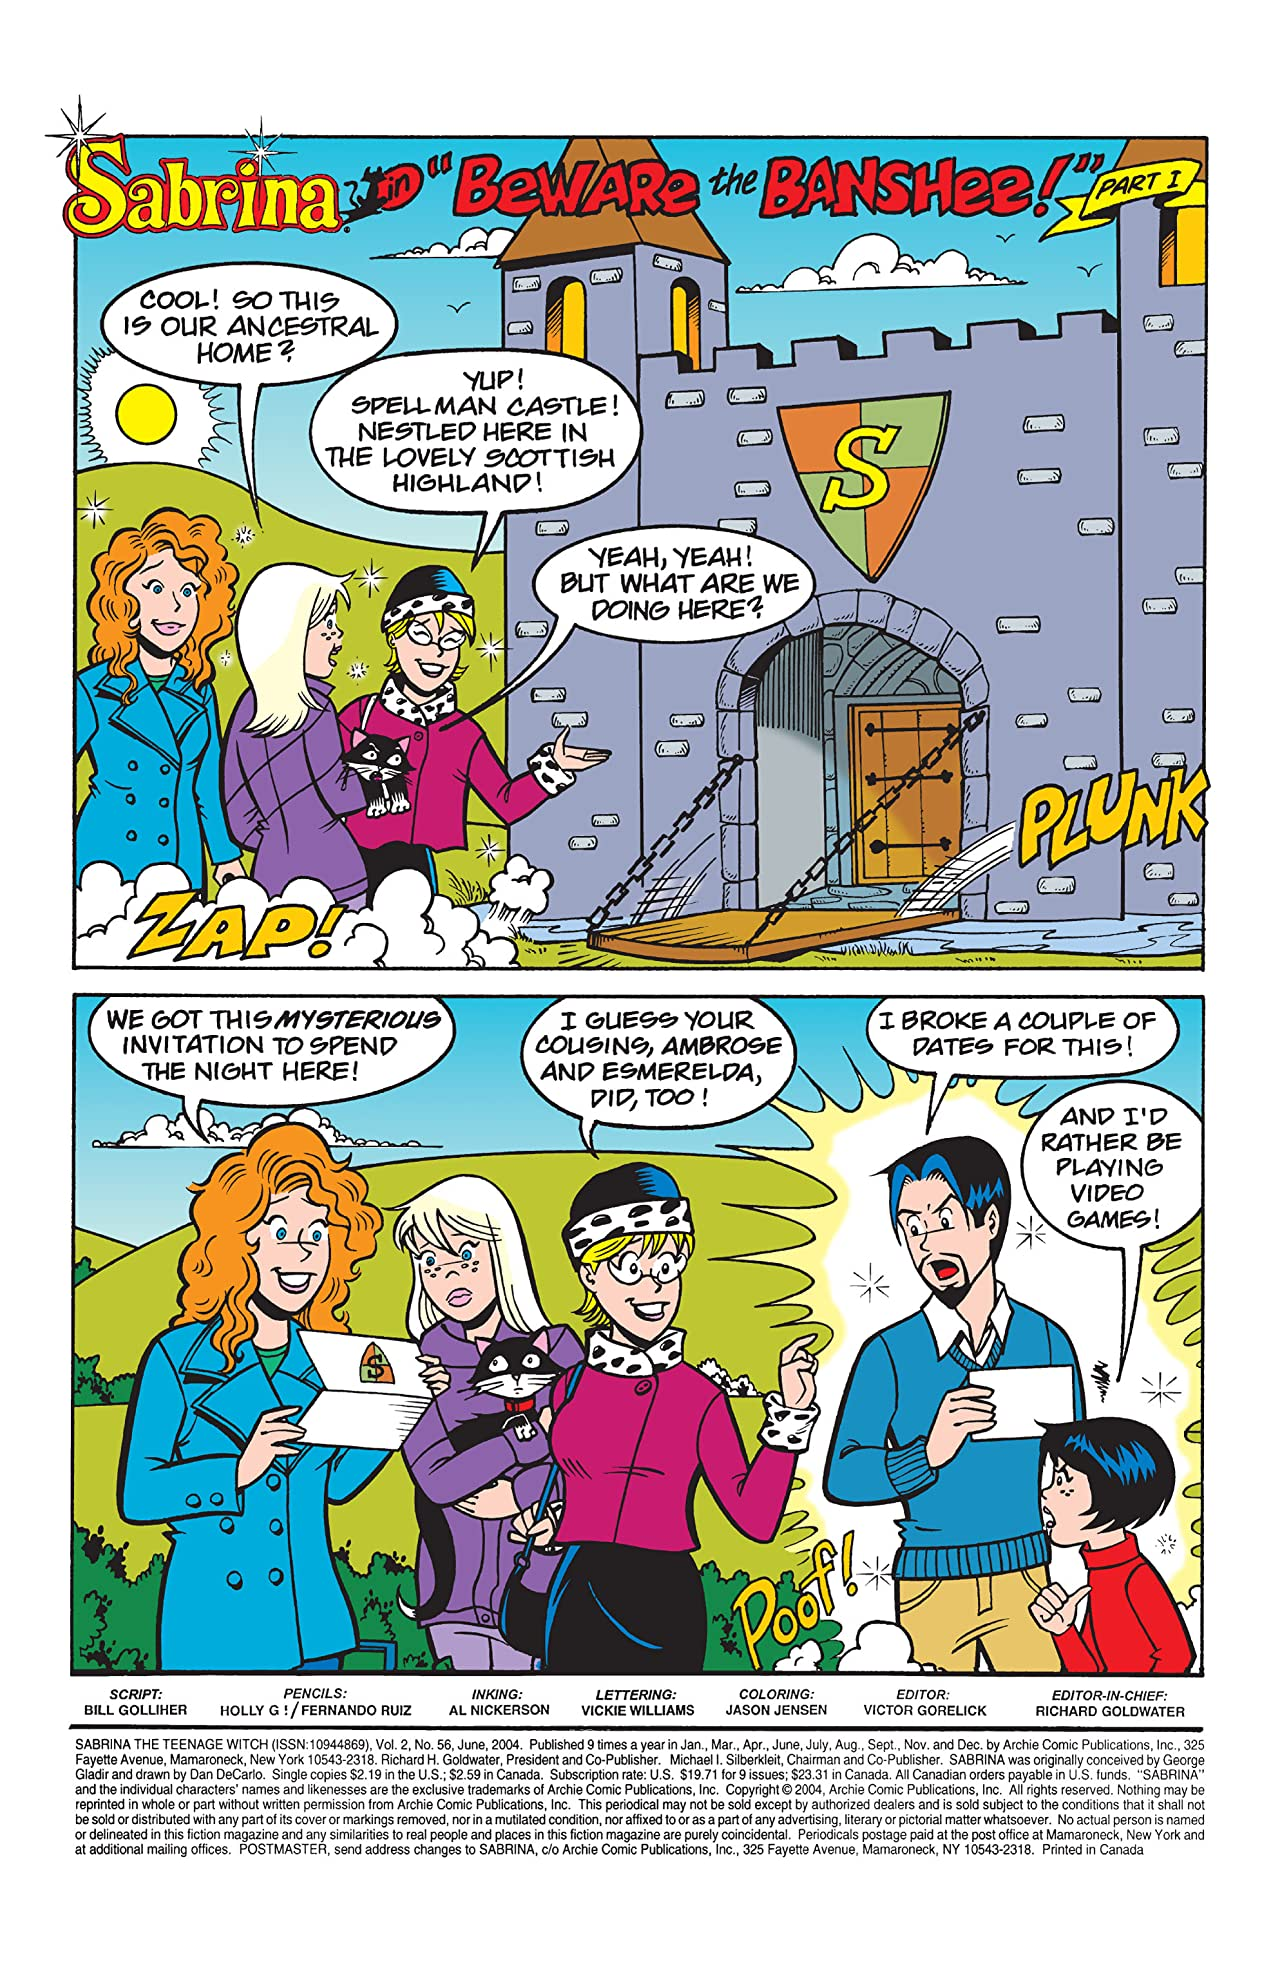 Sabrina the Teenage Witch #56